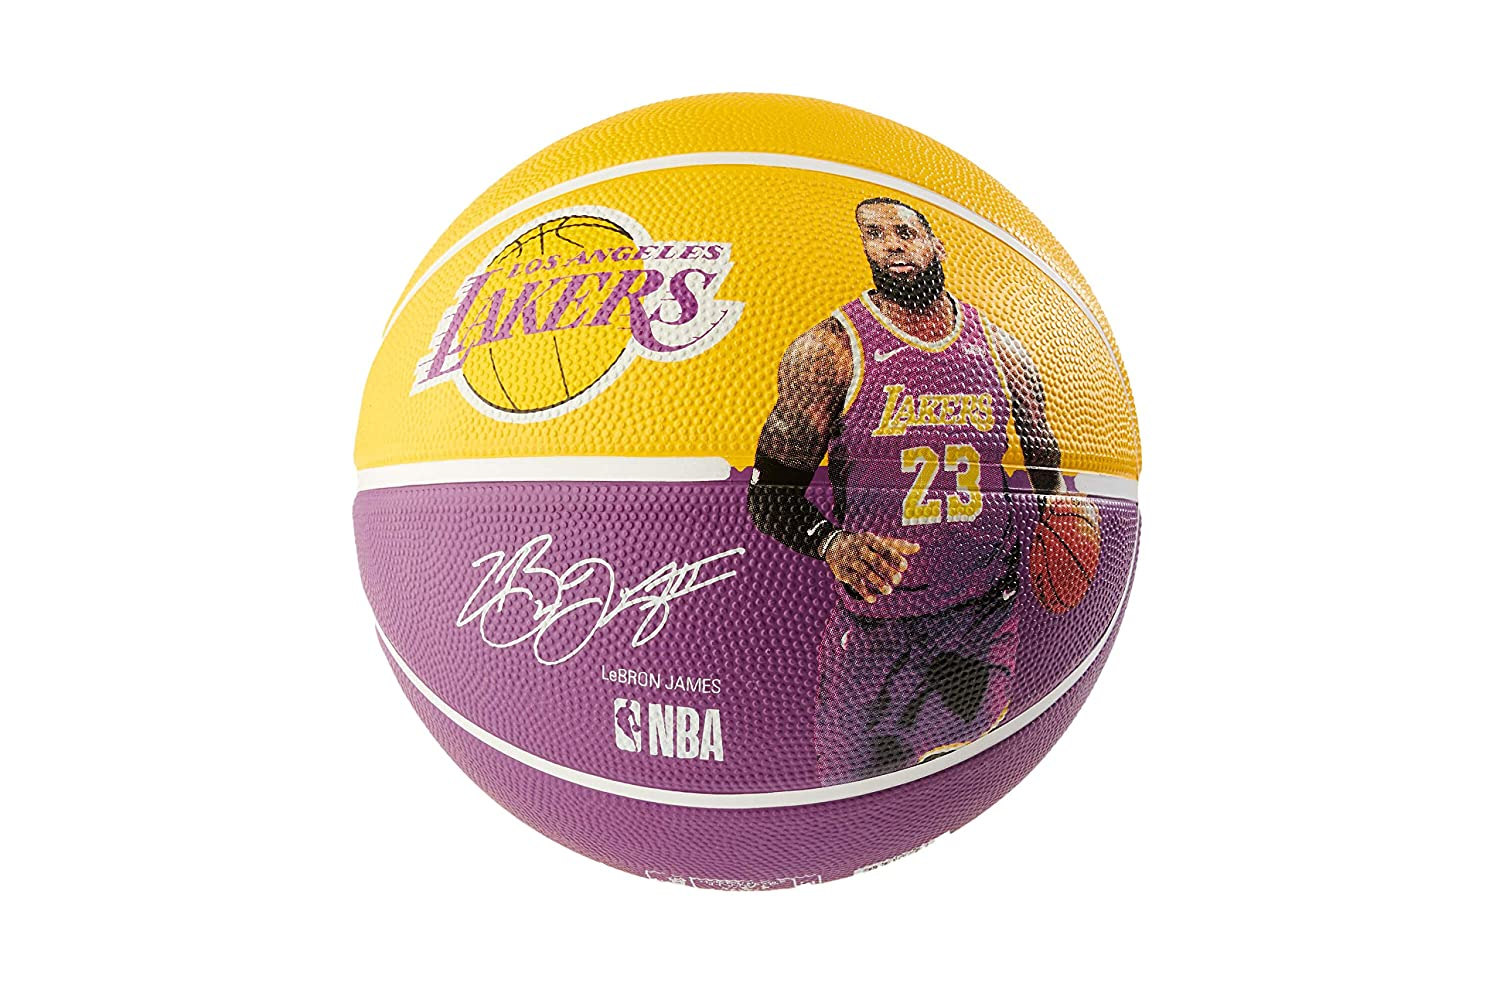 Spalding NBA Player Lebron James MIS 7: Amazon.es: Deportes y aire ...